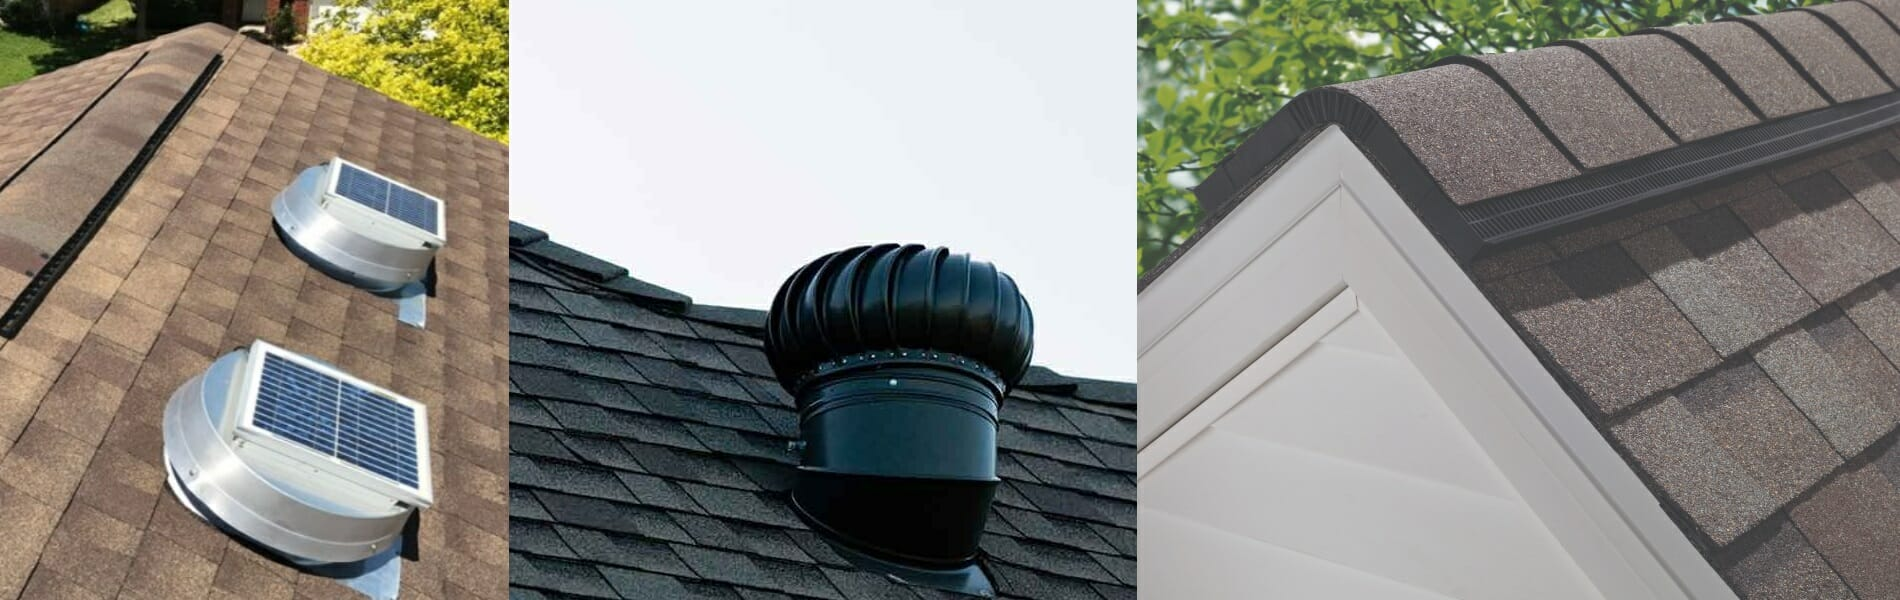 attic-ventilation-service-honest-roof